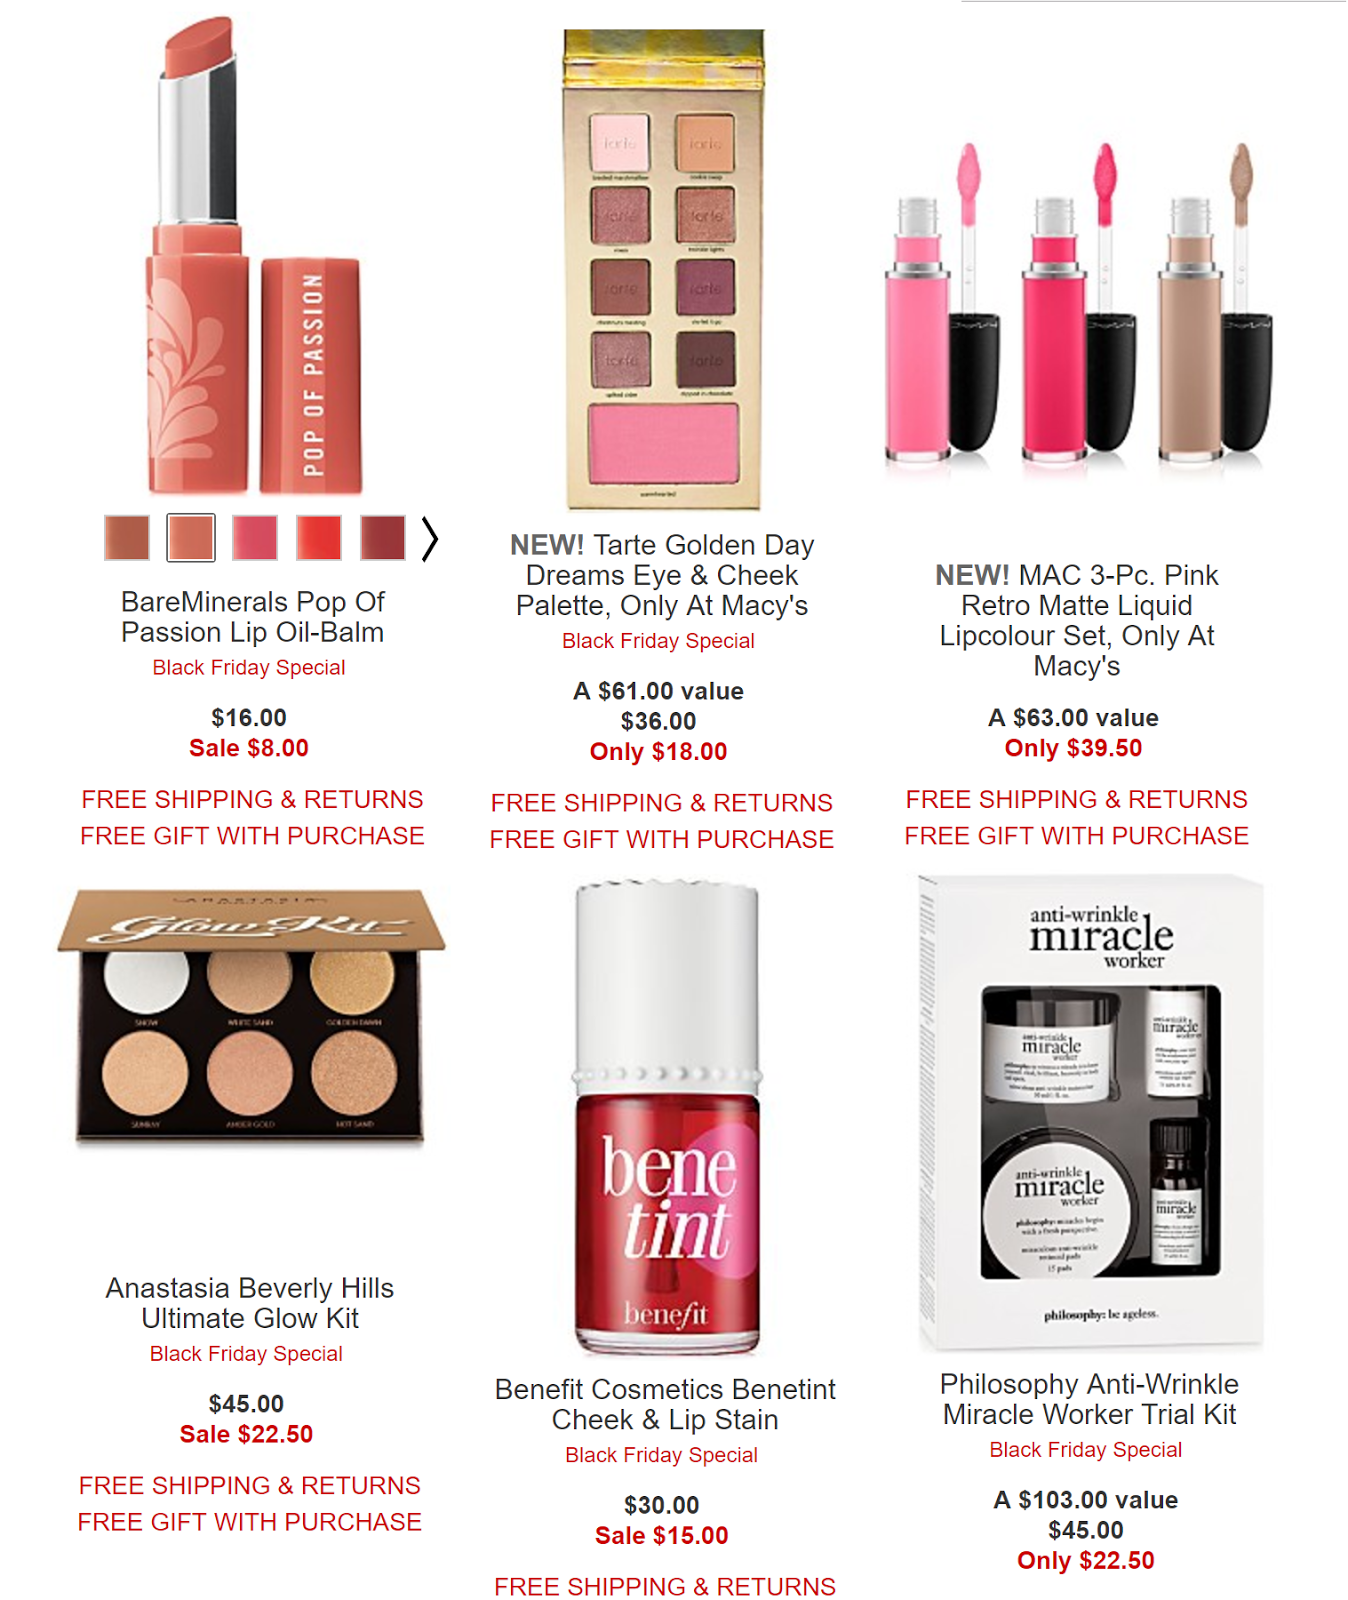 Macy's Black Friday In July Sale Starts Today! - Beauddiction